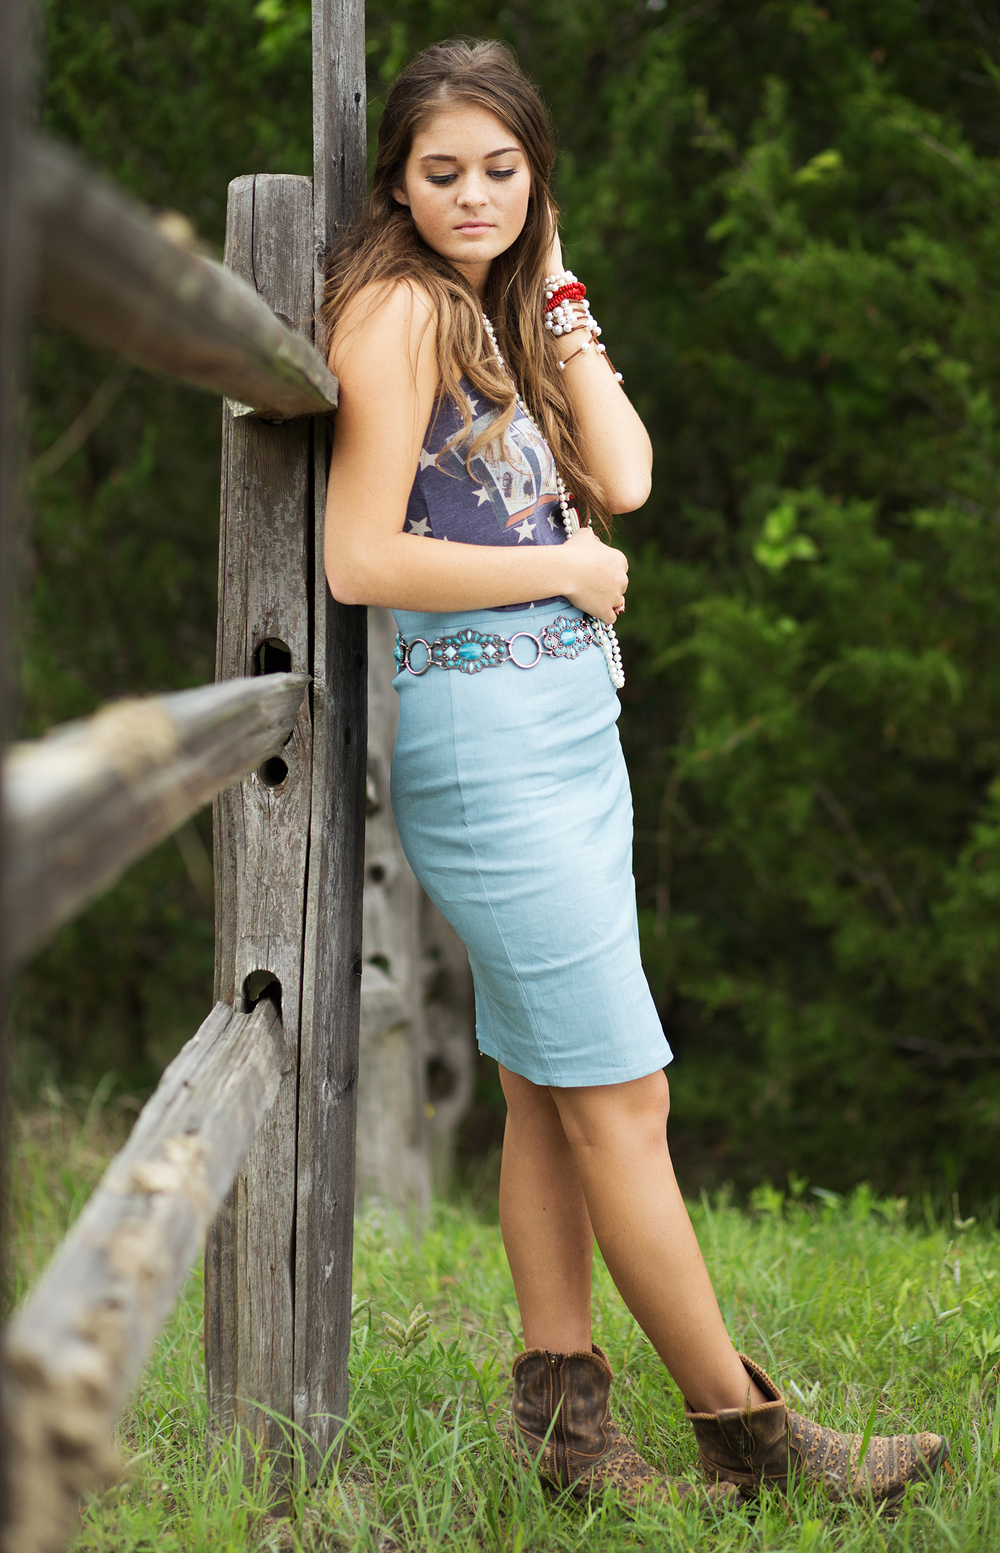 Rachelb-junction city senior photographer.jpg